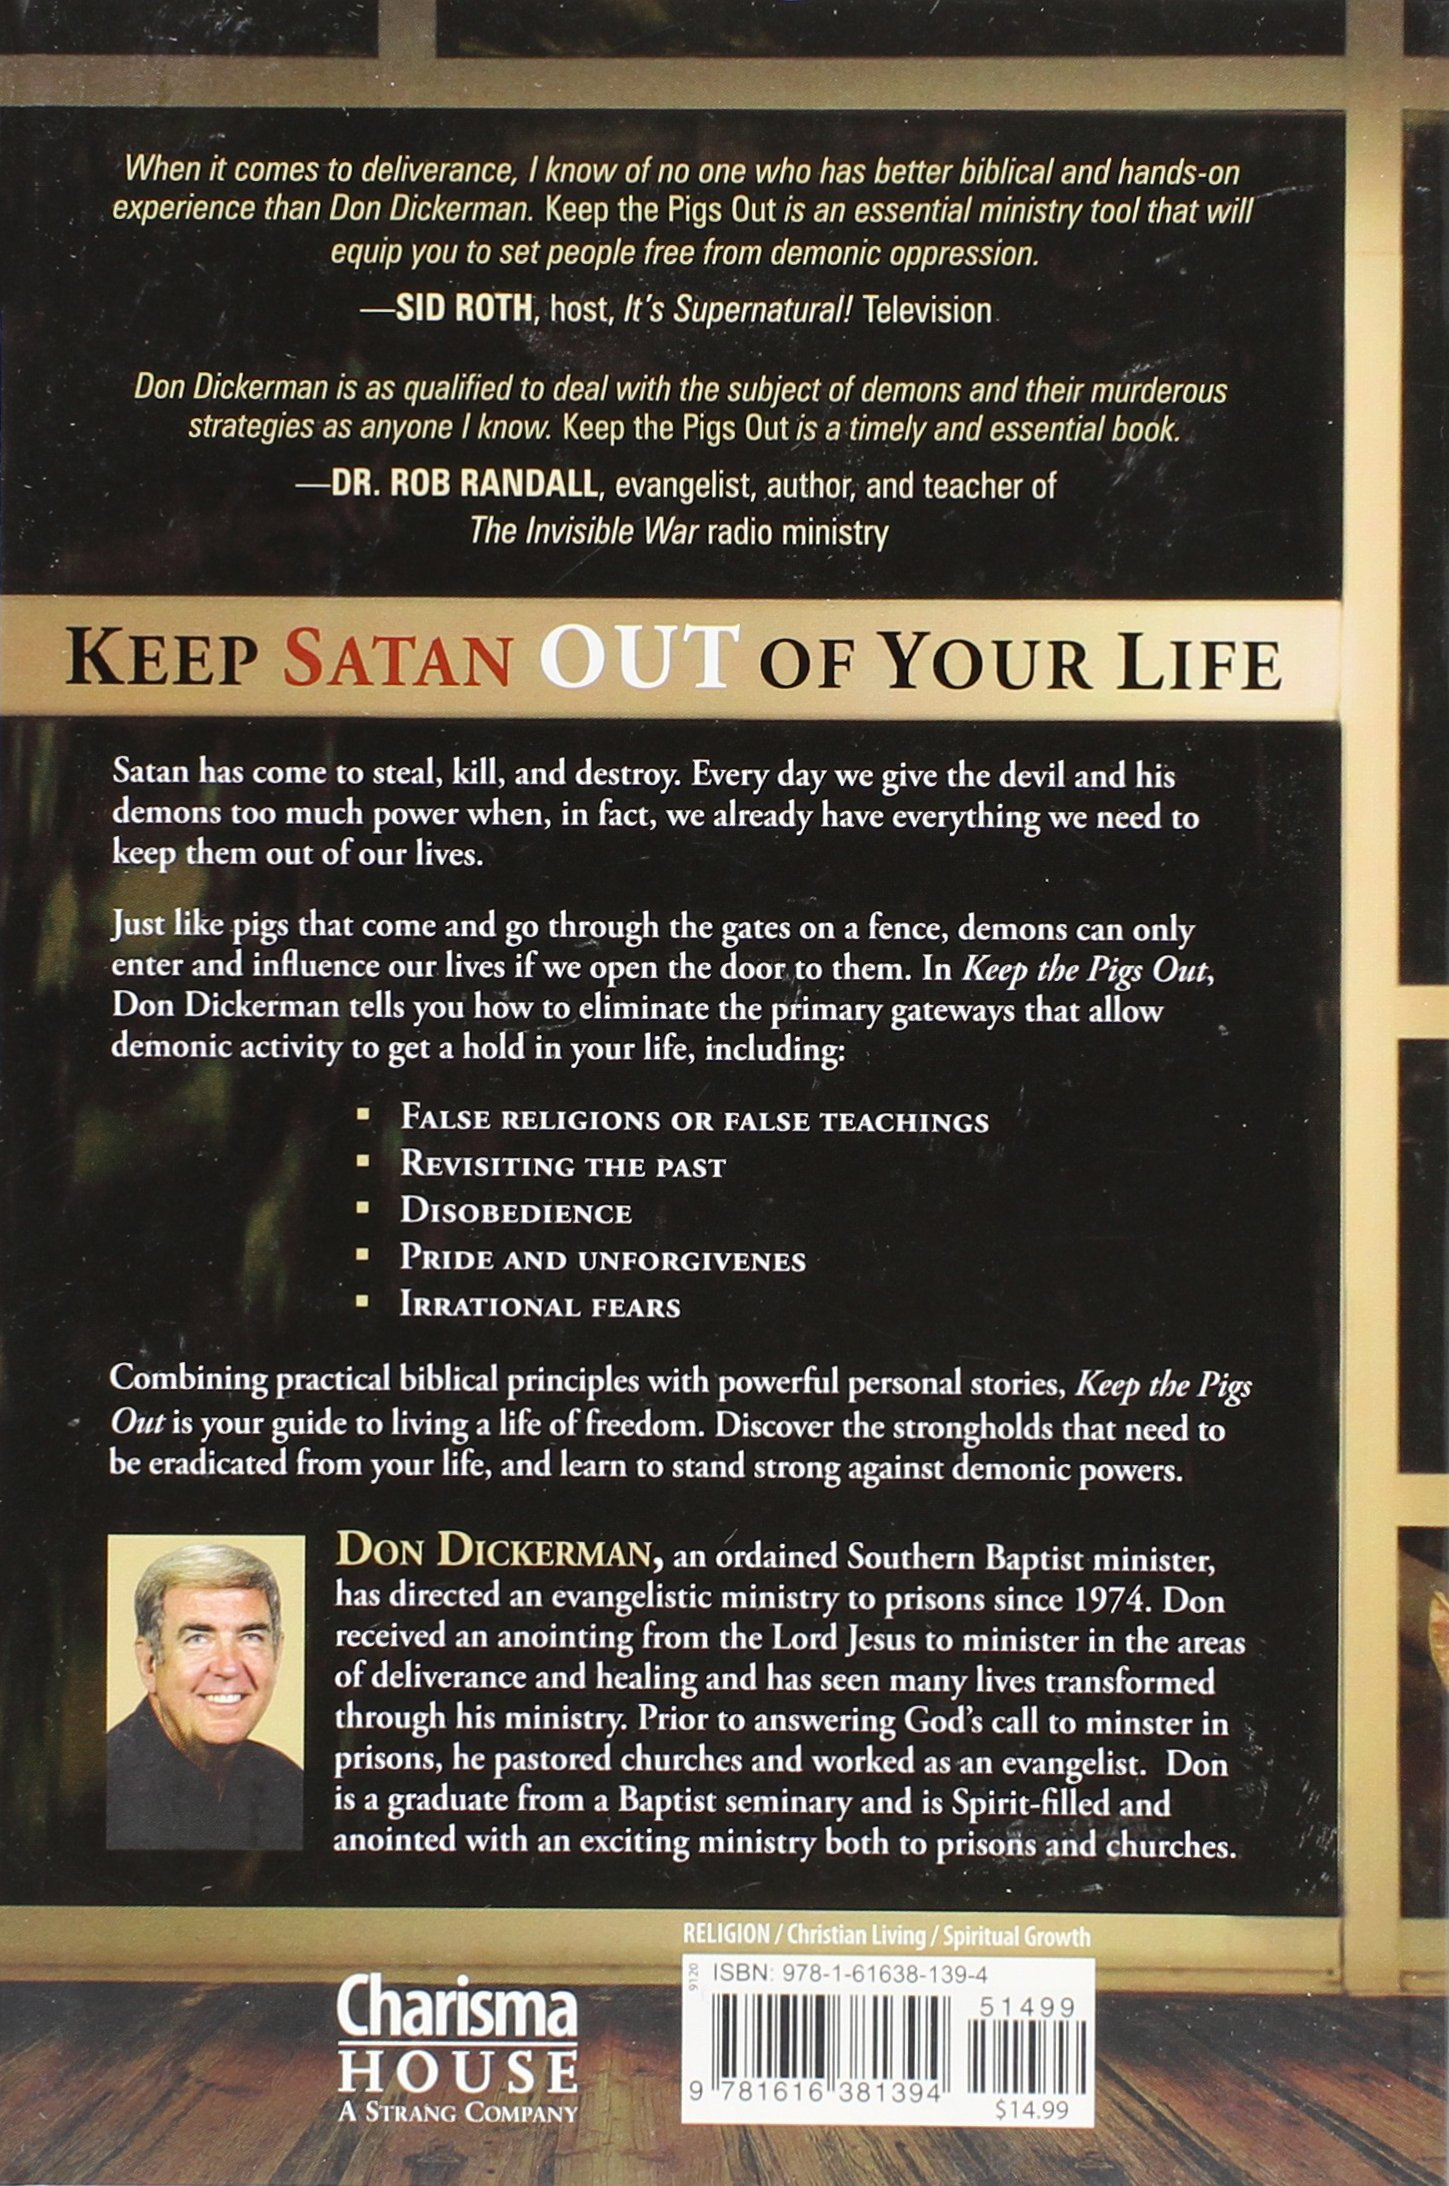 Keep the pigs out how to slam the door shut on satan and his demons keep the pigs out how to slam the door shut on satan and his demons and keep your spiritual house clean don dickerman 9781616381394 amazon books fandeluxe Gallery